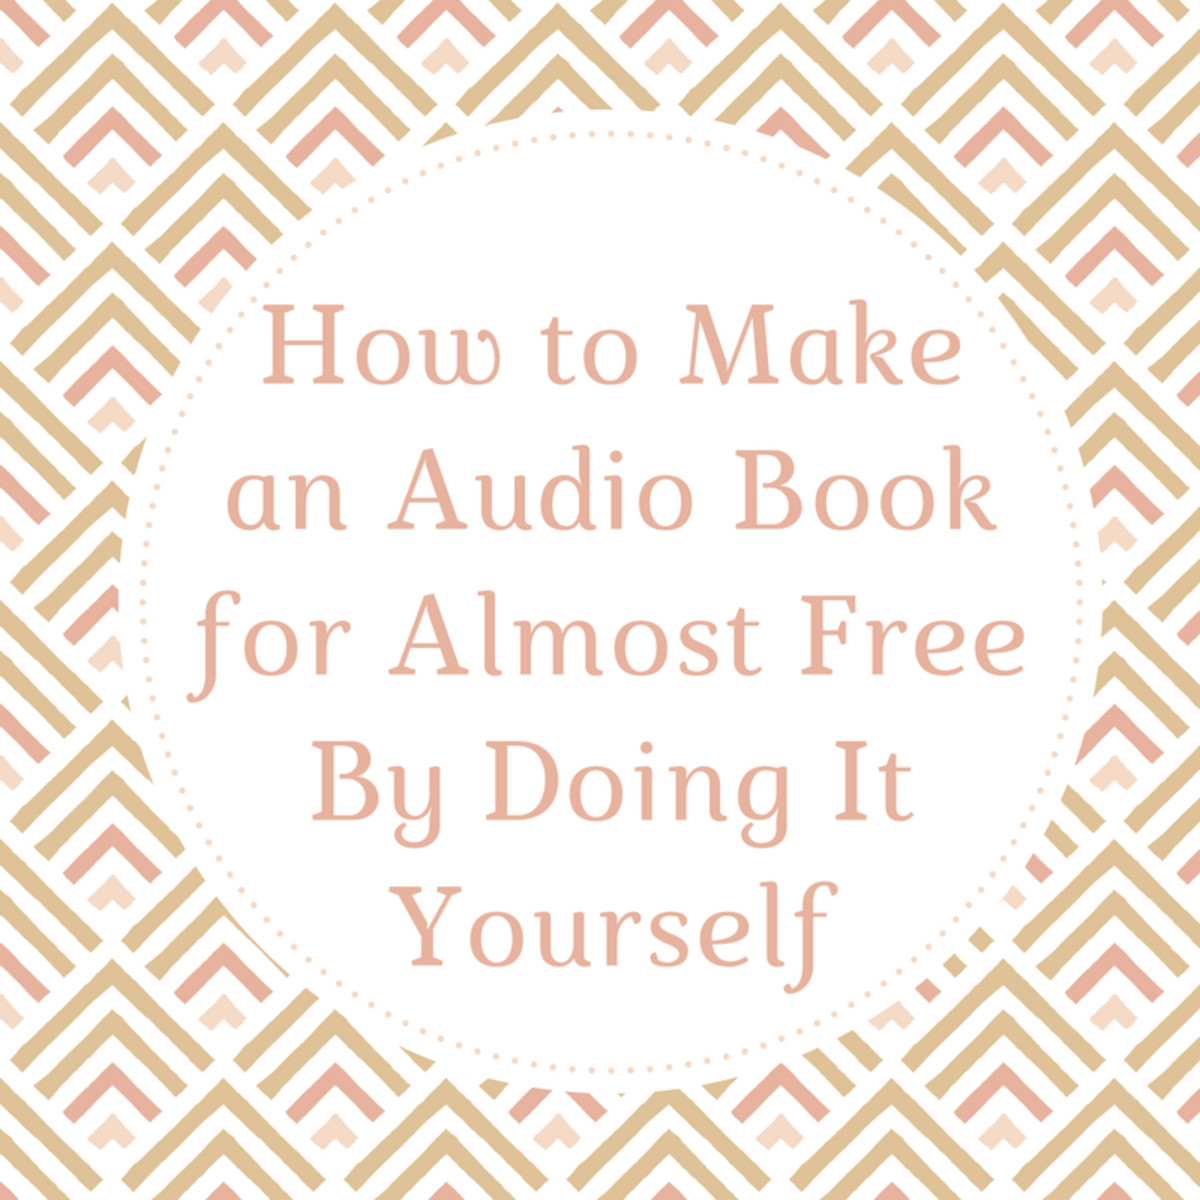 Pay next to nothing to make your audiobook!